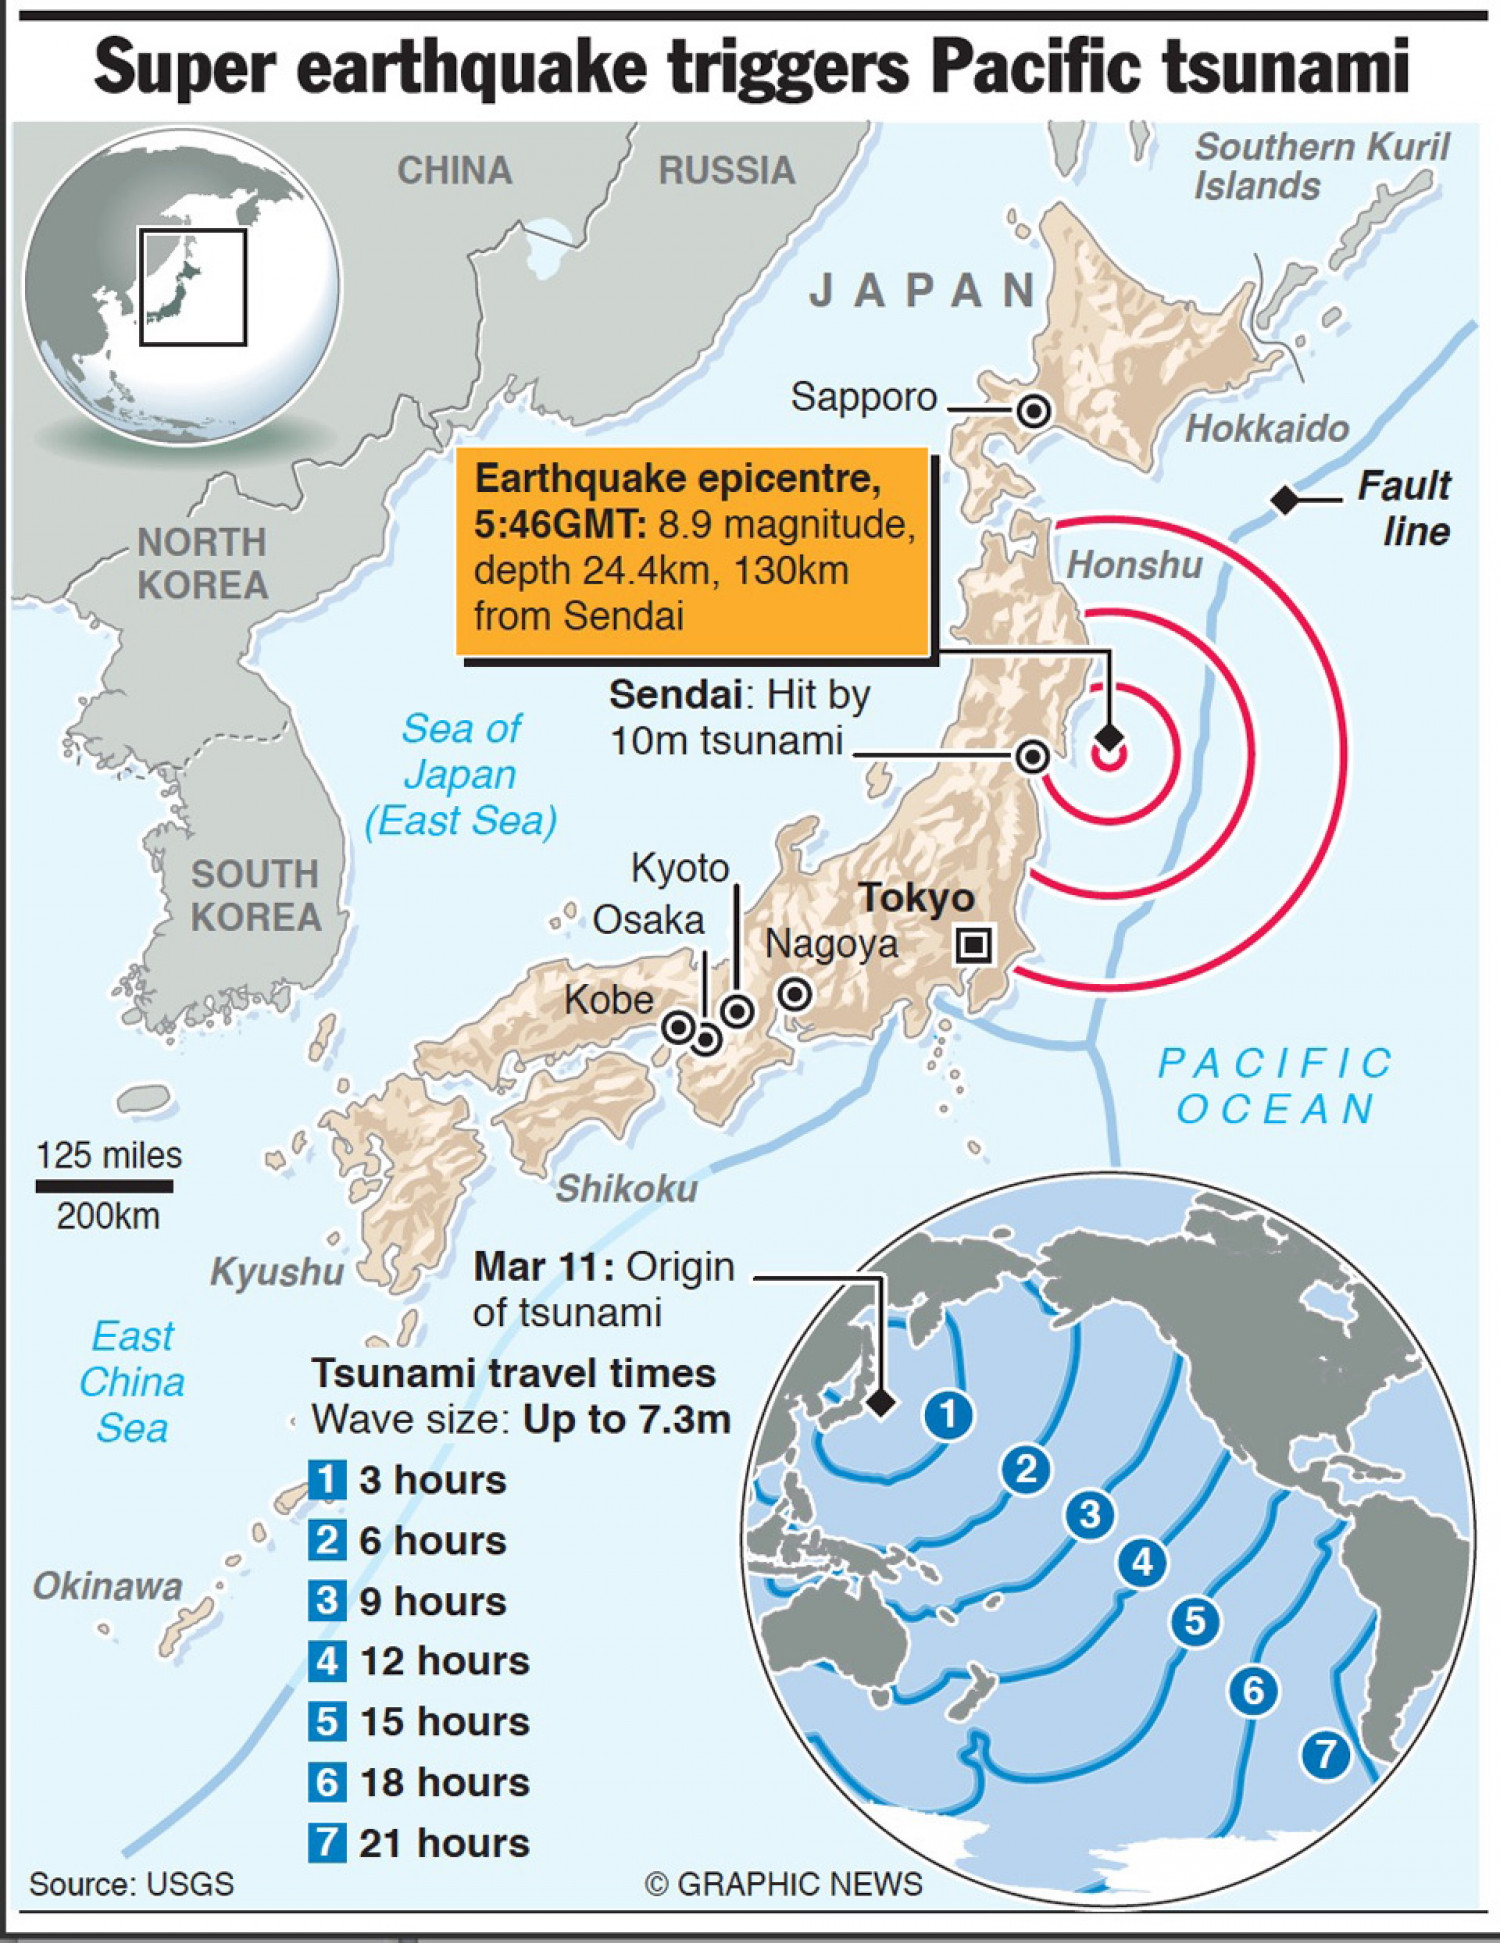 Super Earthquake Triggers Pacific Tsunami  Infographic